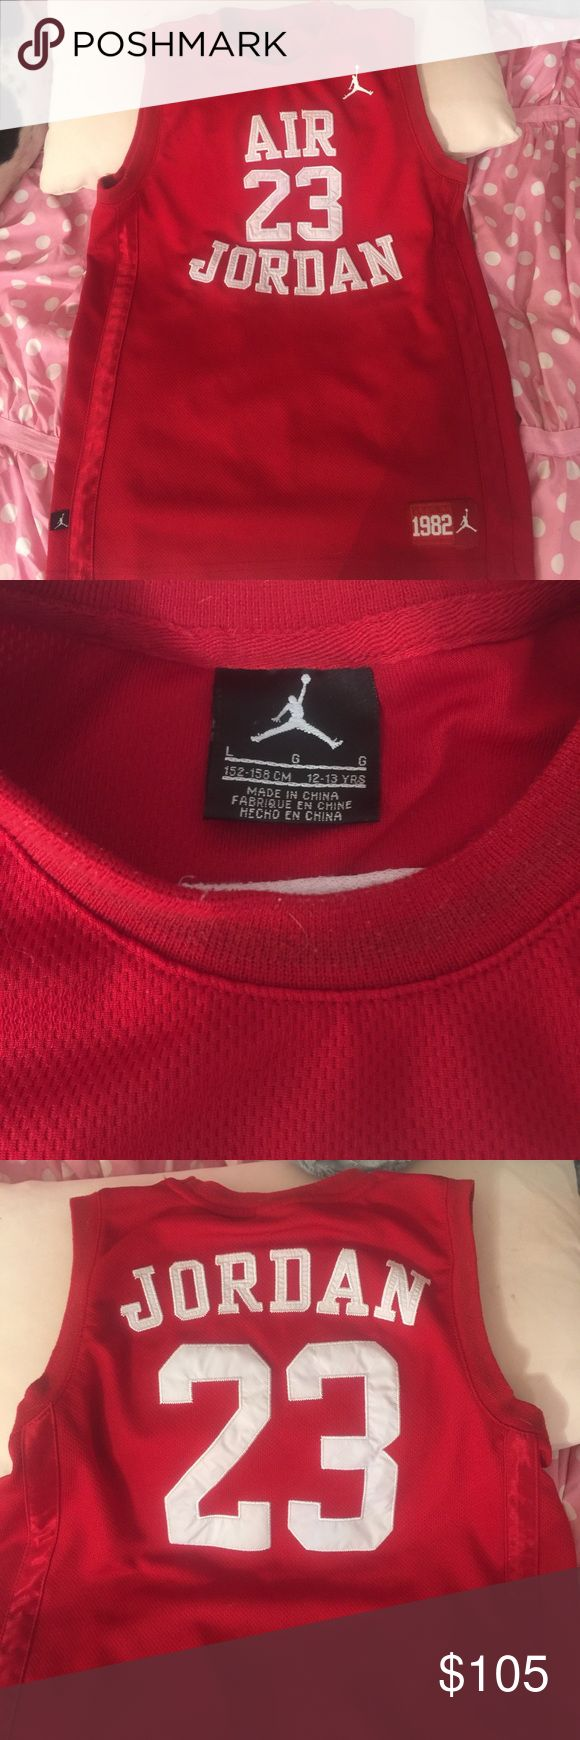 Michael Jordan youth large awesome shirt Like new Michael Jordan basketball shirt. Youth large. Usually fits 12-14 years old. MBA Shirts & Tops Tees - Short Sleeve